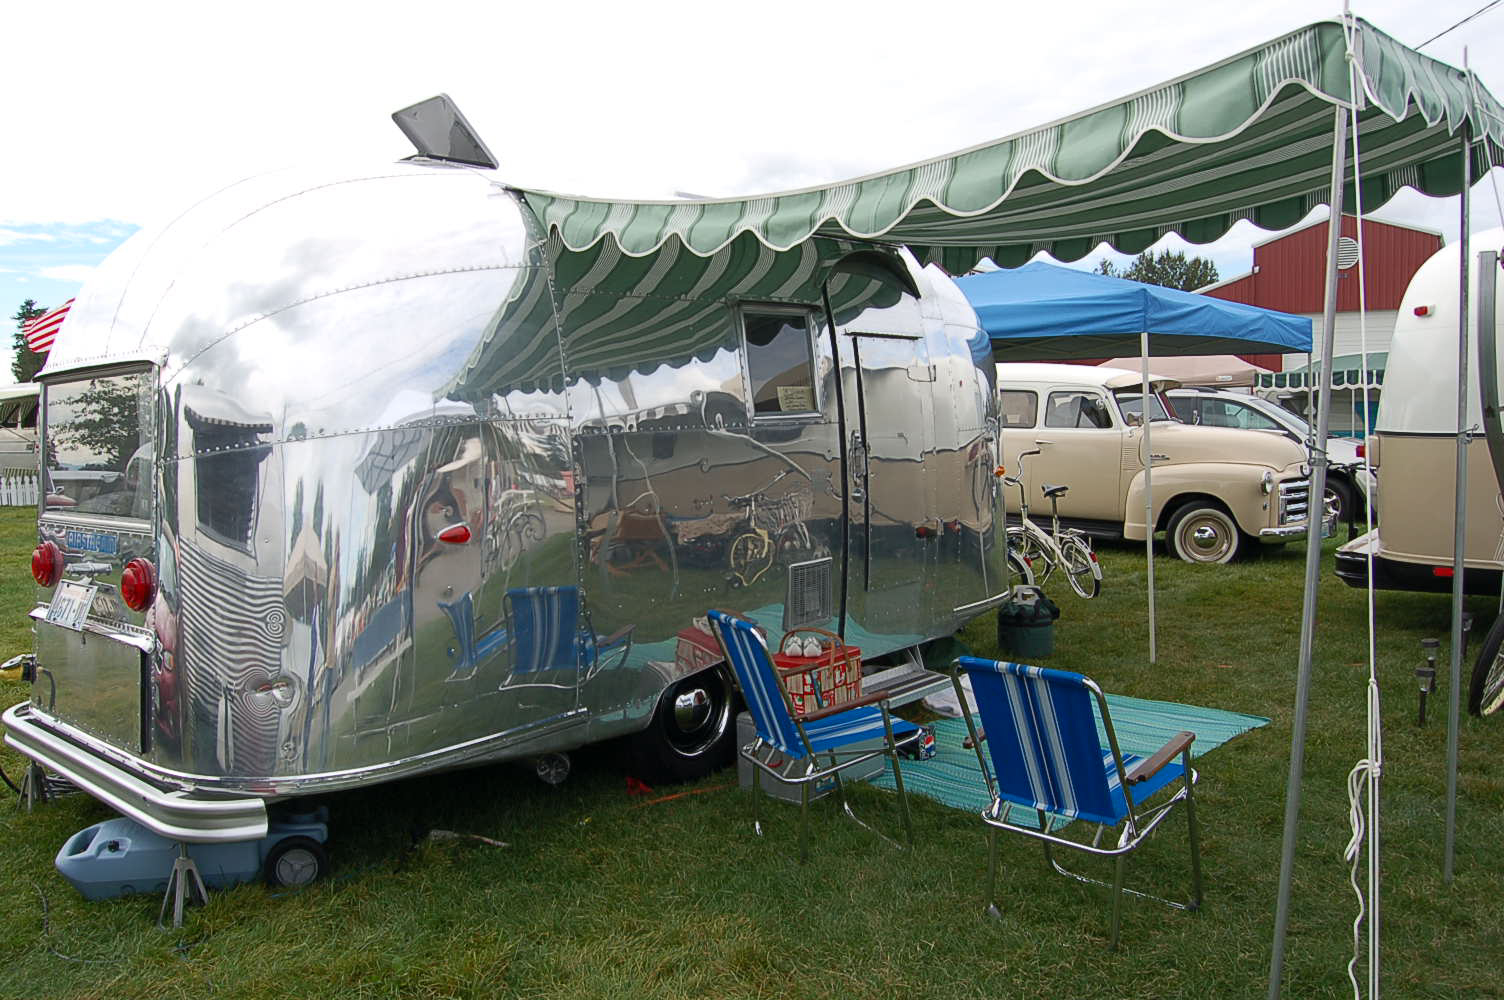 1960 Airstream Caravel Trailer With A Dark Green And Light Striped Canvas Awning